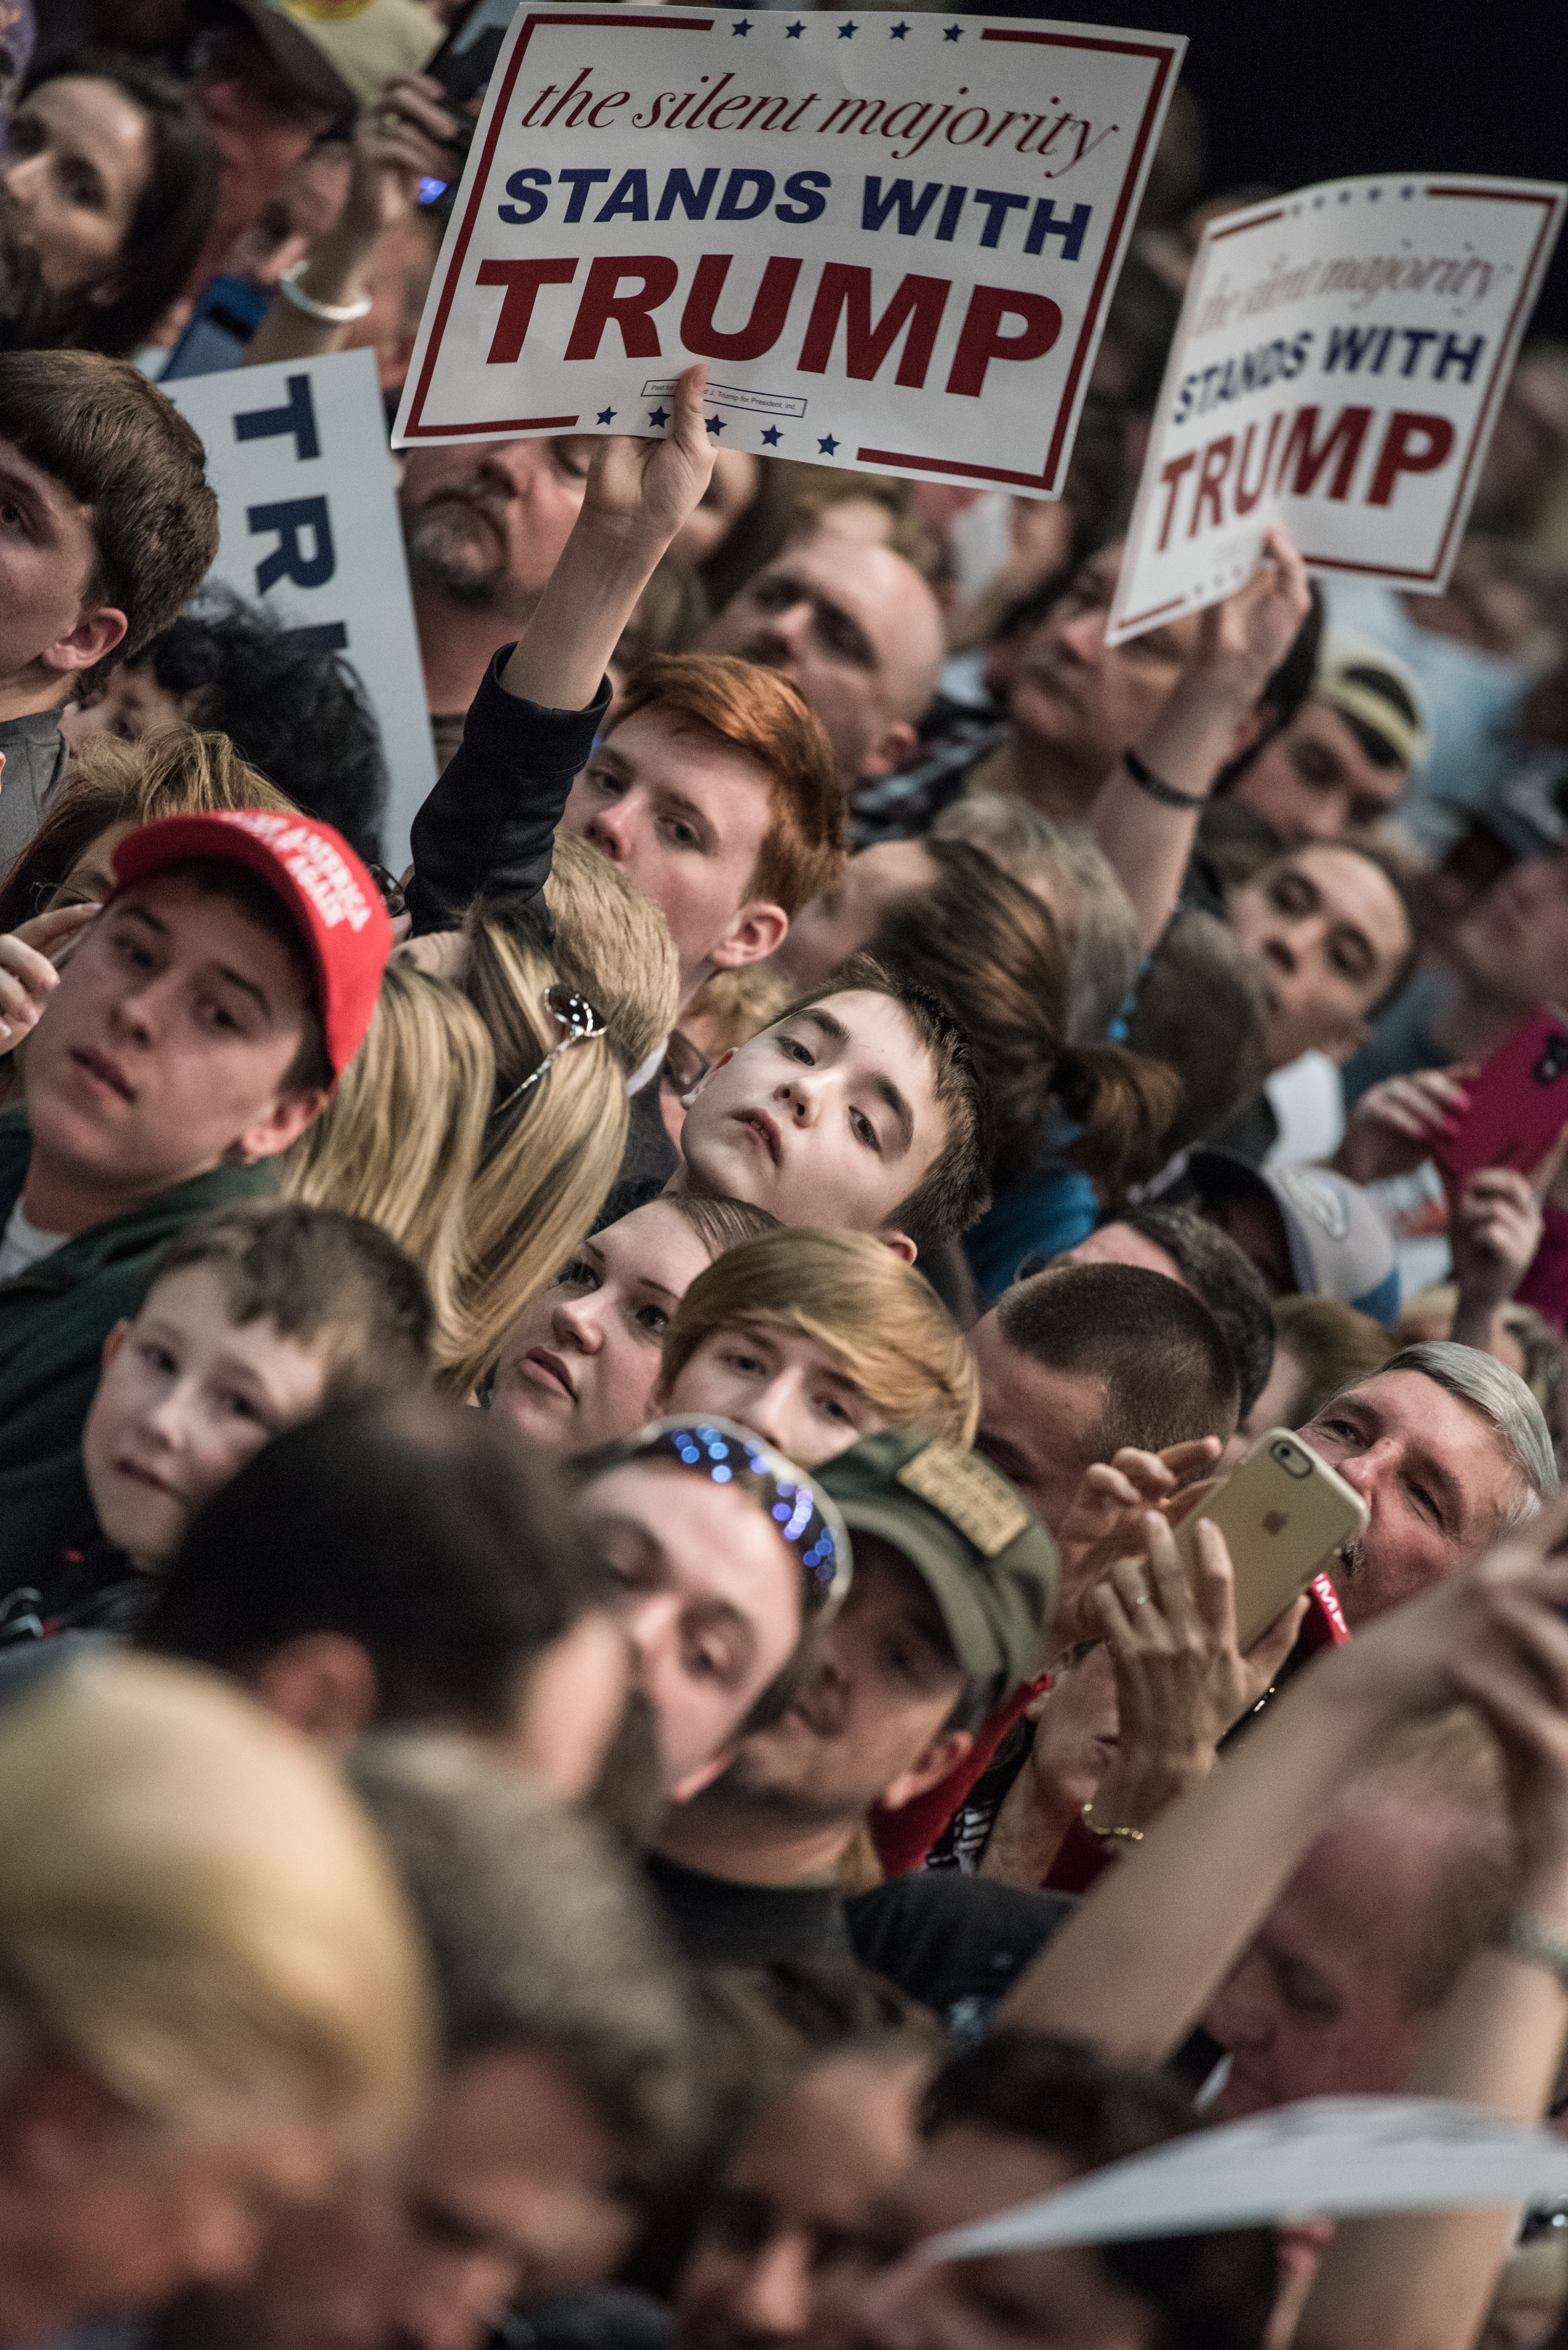 Donald Trump supporters wait for autographs from the Republican presidential candidate at a rally on March 7 in Concord, N.C.